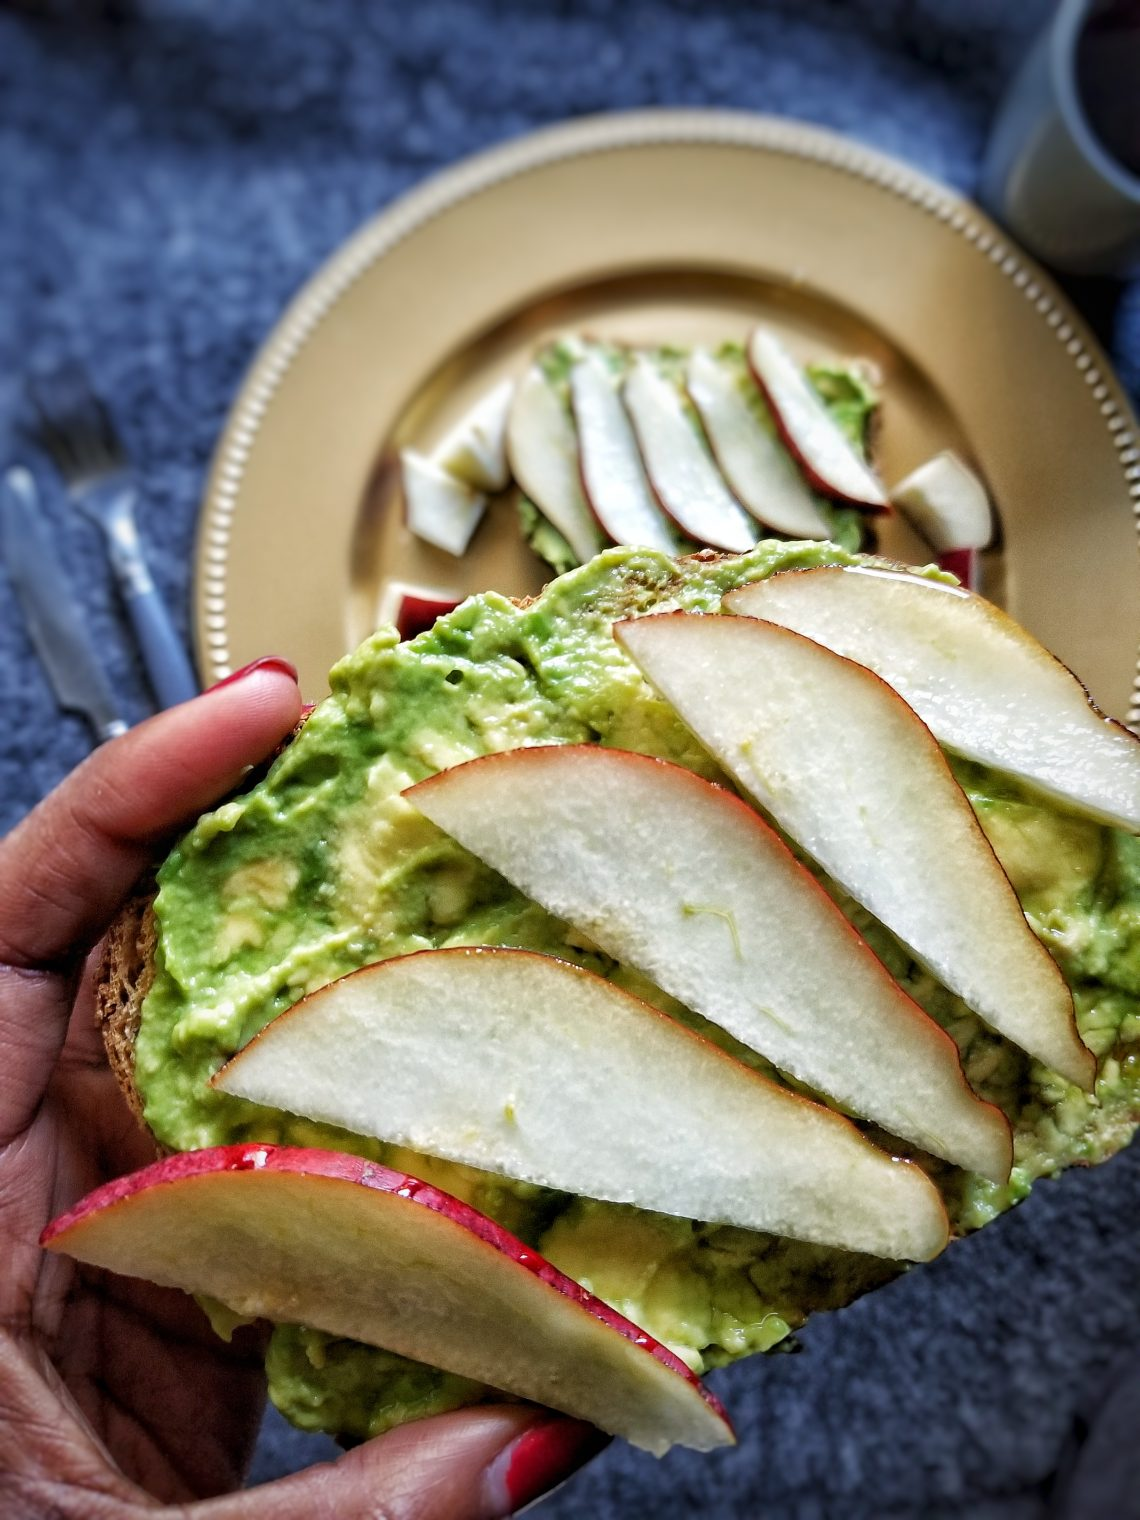 Toasted bread topped with avocado and sliced pears